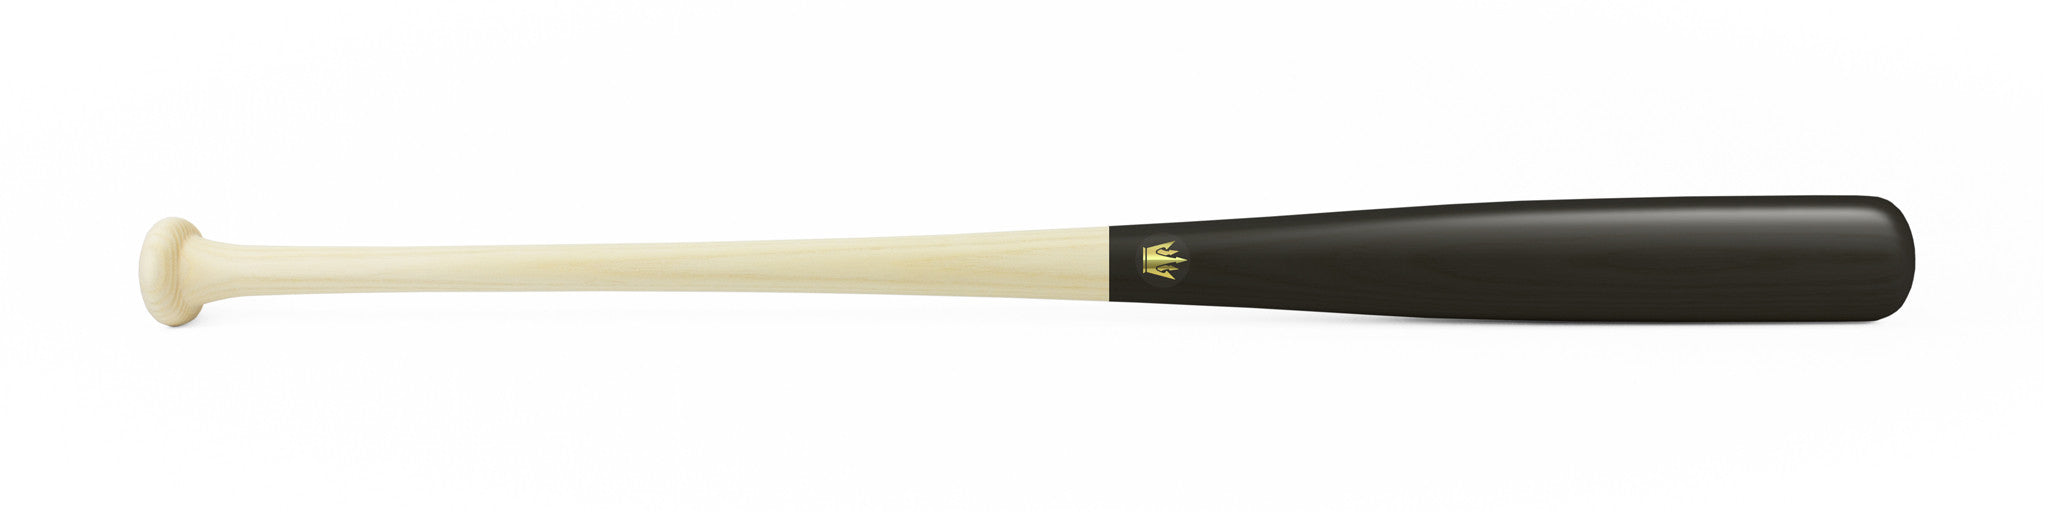 Wood bat - Ash model 421 Black Standard - 23